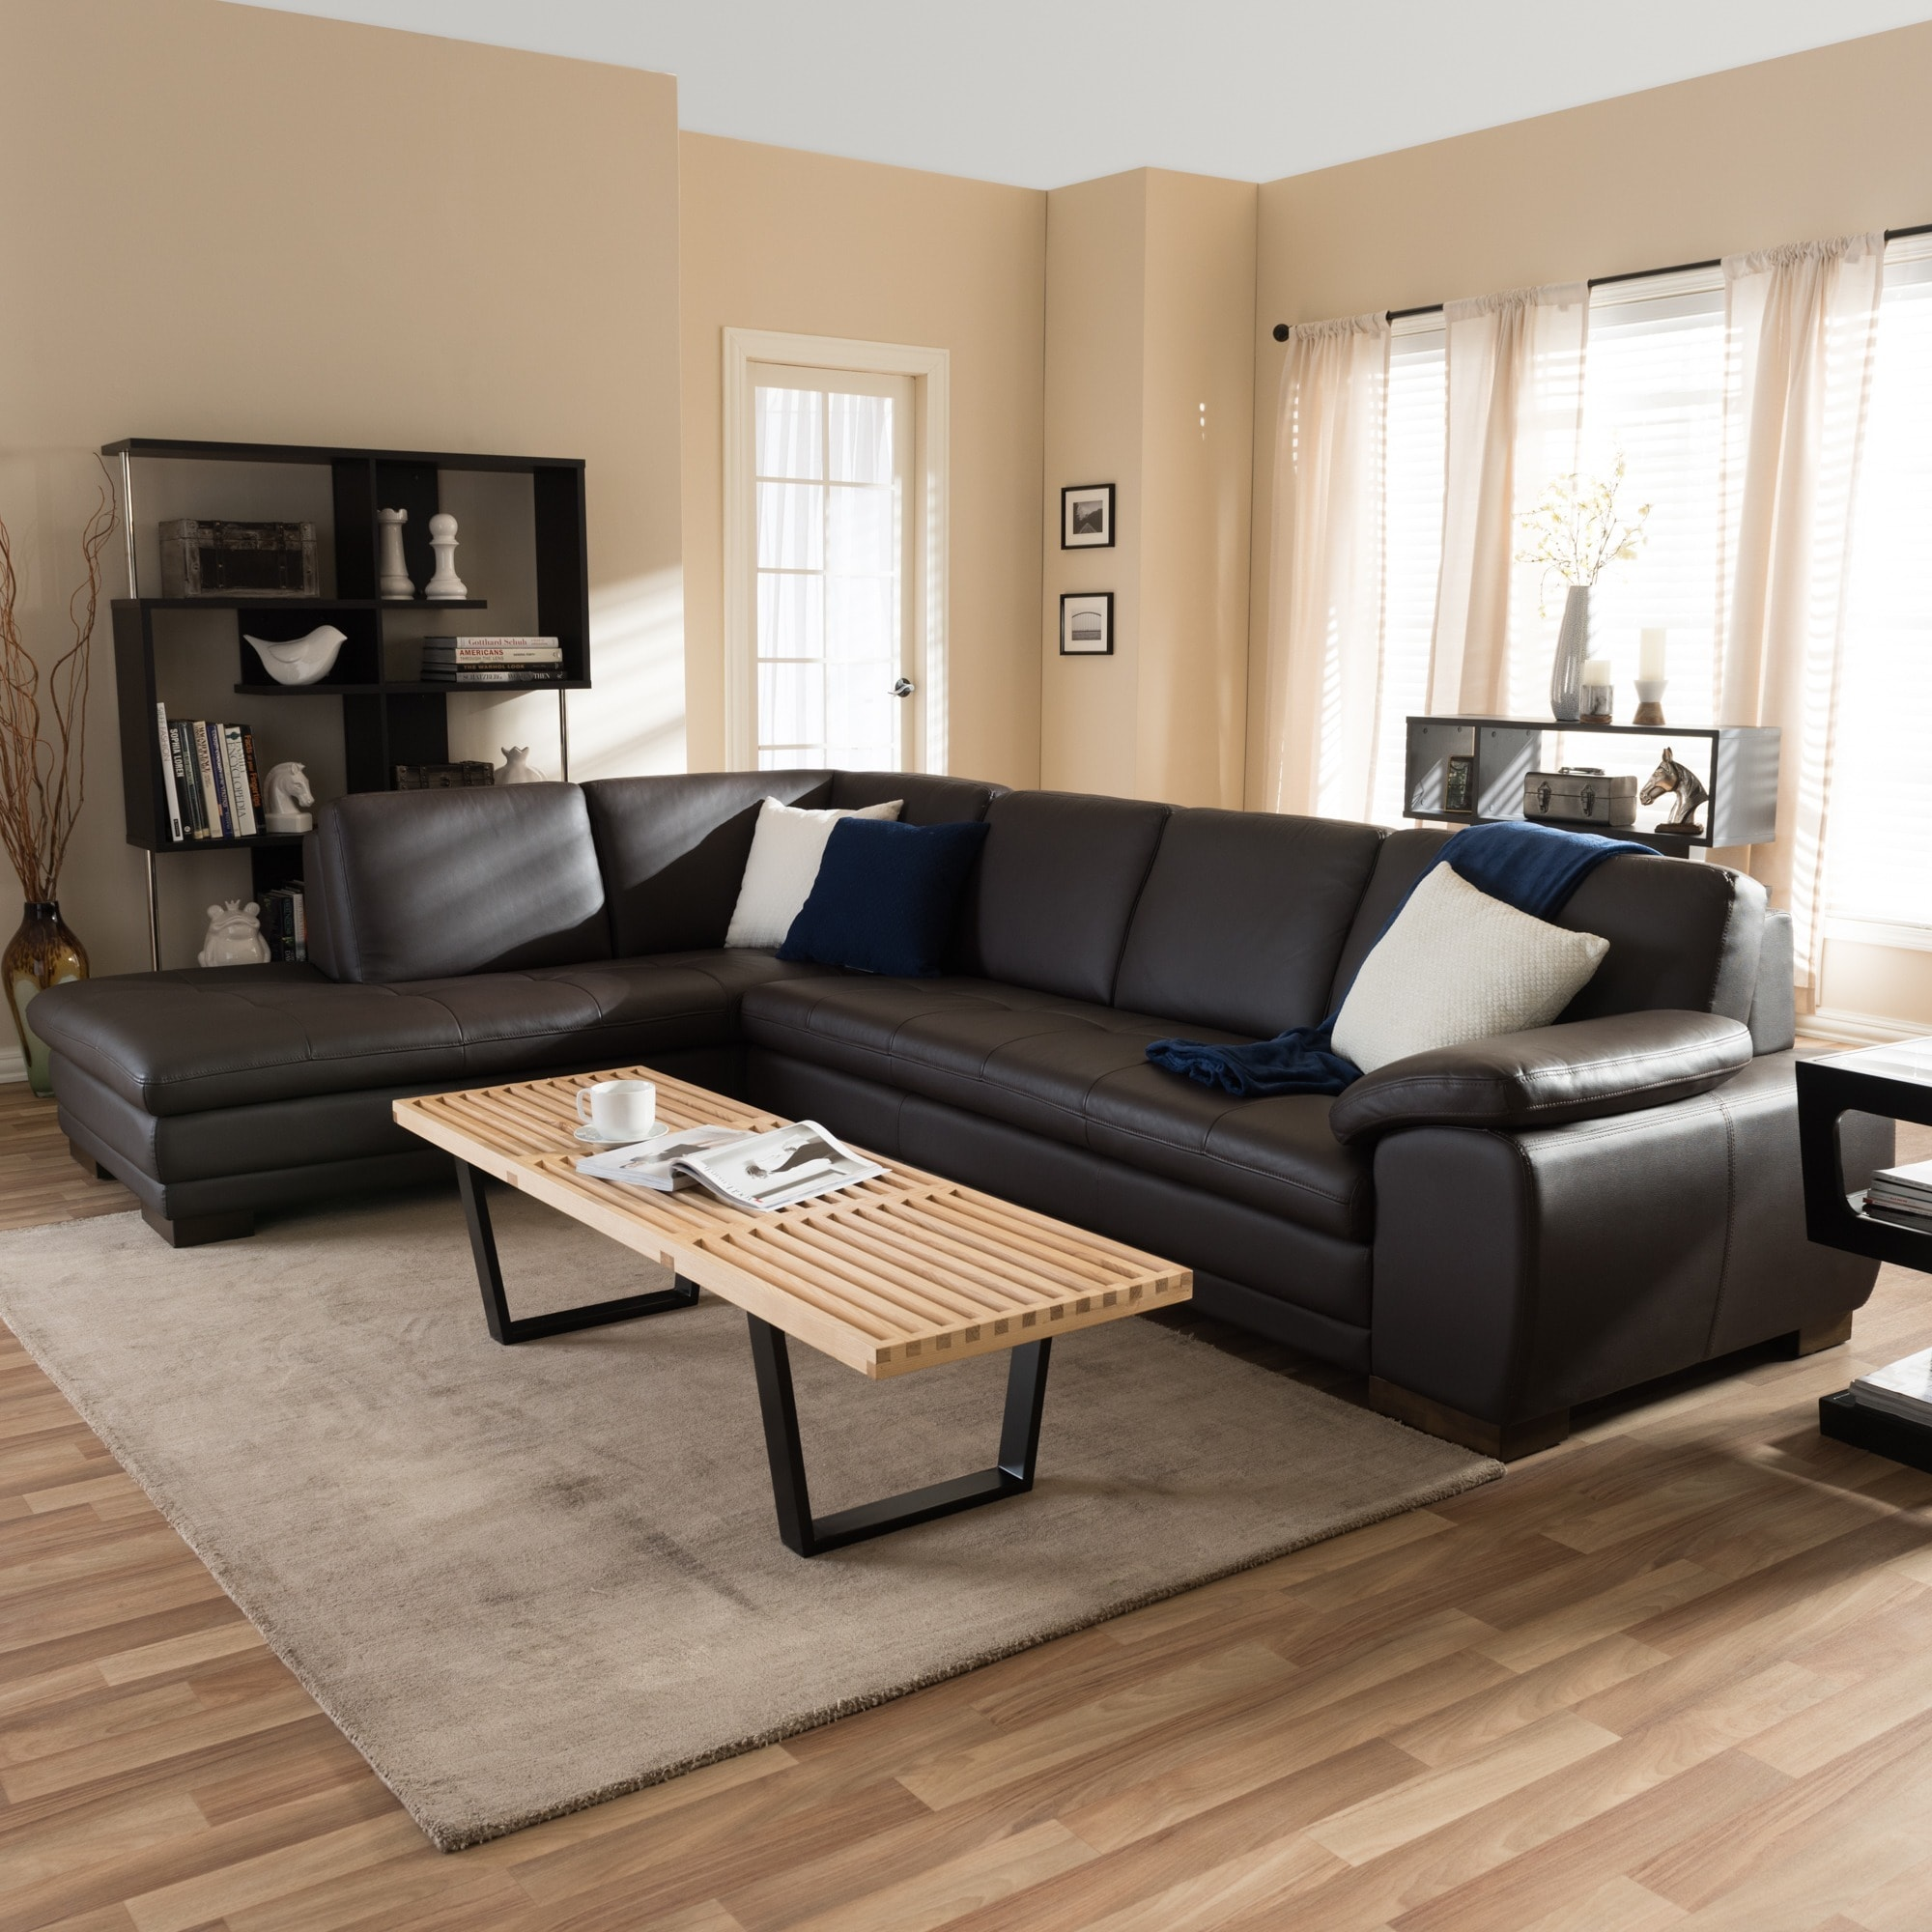 Shop Angela Dark Brown 2-piece Leather Sectional Sofa - Free ...